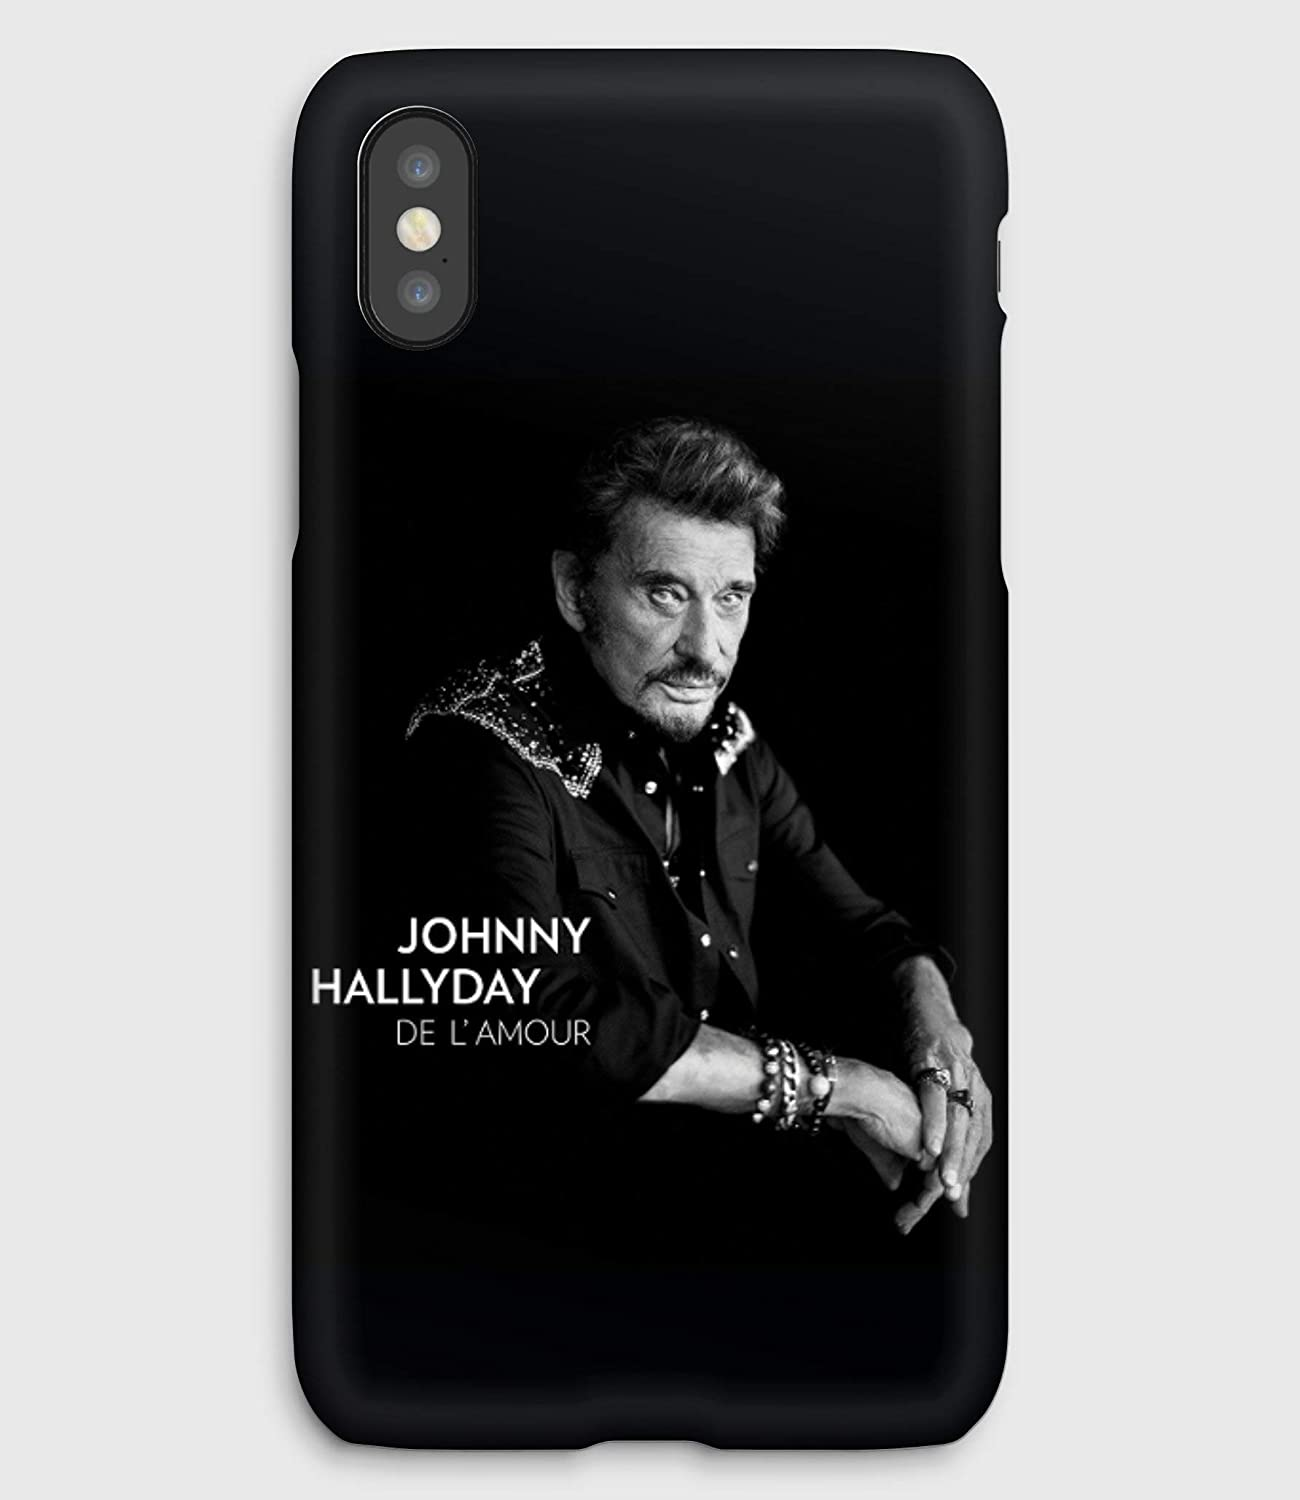 De l'amour Johnny Hallyday,coque pour iPhone XS, XS Max, XR, X, 8, 8+, 7, 7+, 6S, 6, 6S+, 6+, 5C, 5, 5S, 5SE, 4S, 4,